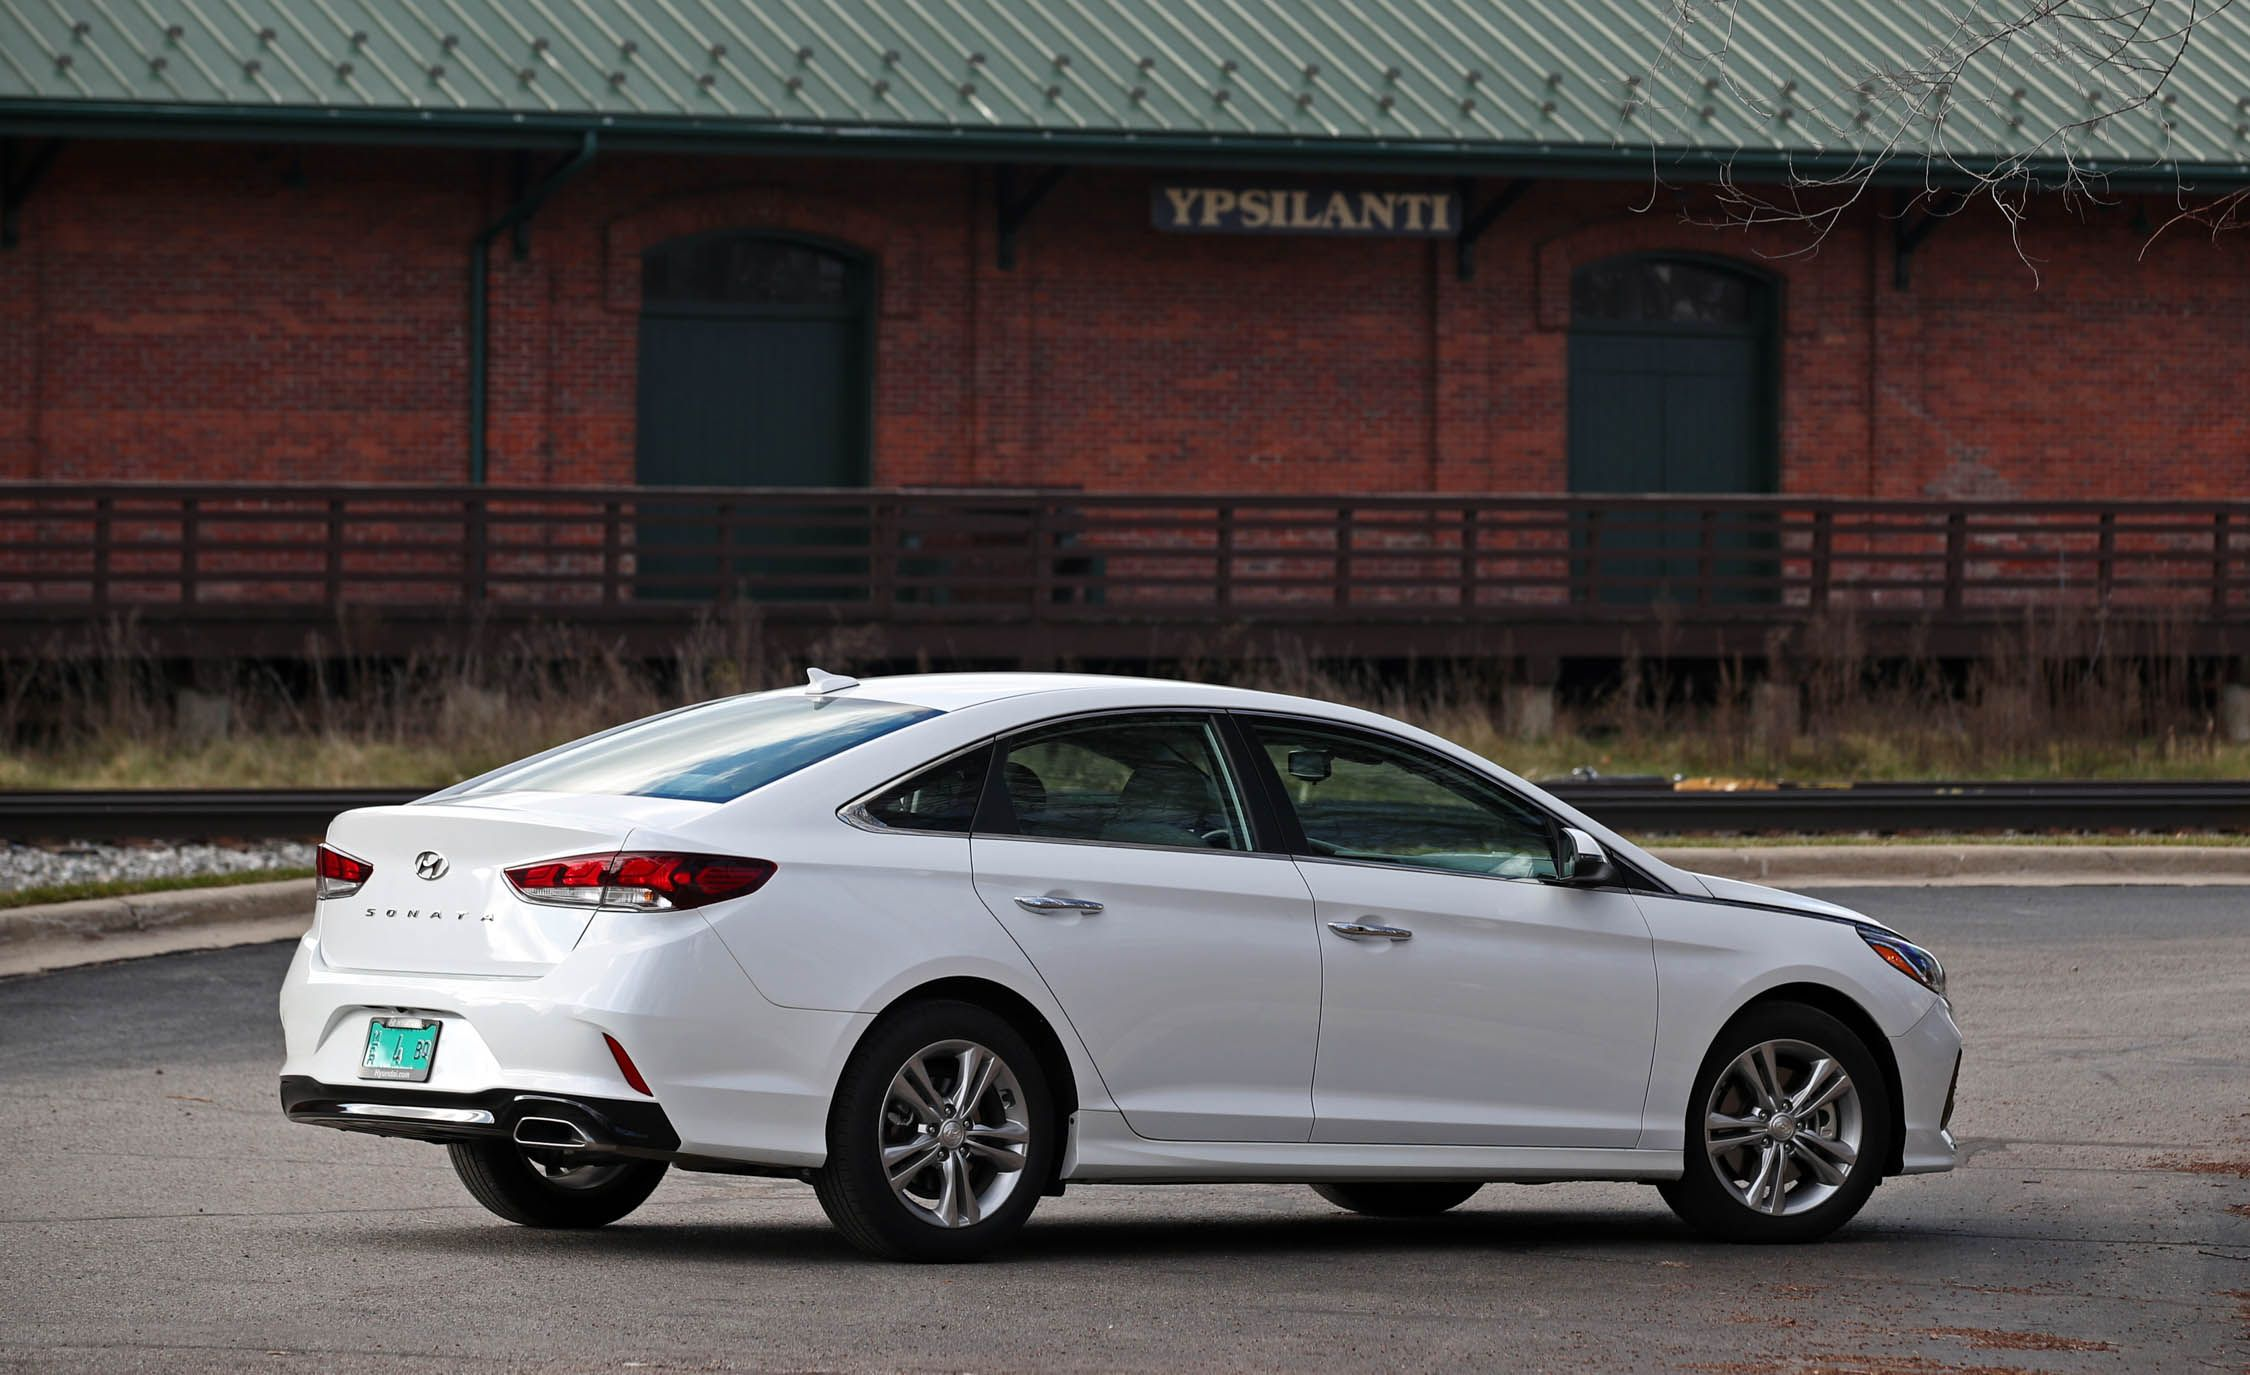 text accommodate in a bumper across and at stacked to more leds auto show interior unveiled lower number sonata york defined with plate hyundai rear now new performancedrive bootlid section sitting the